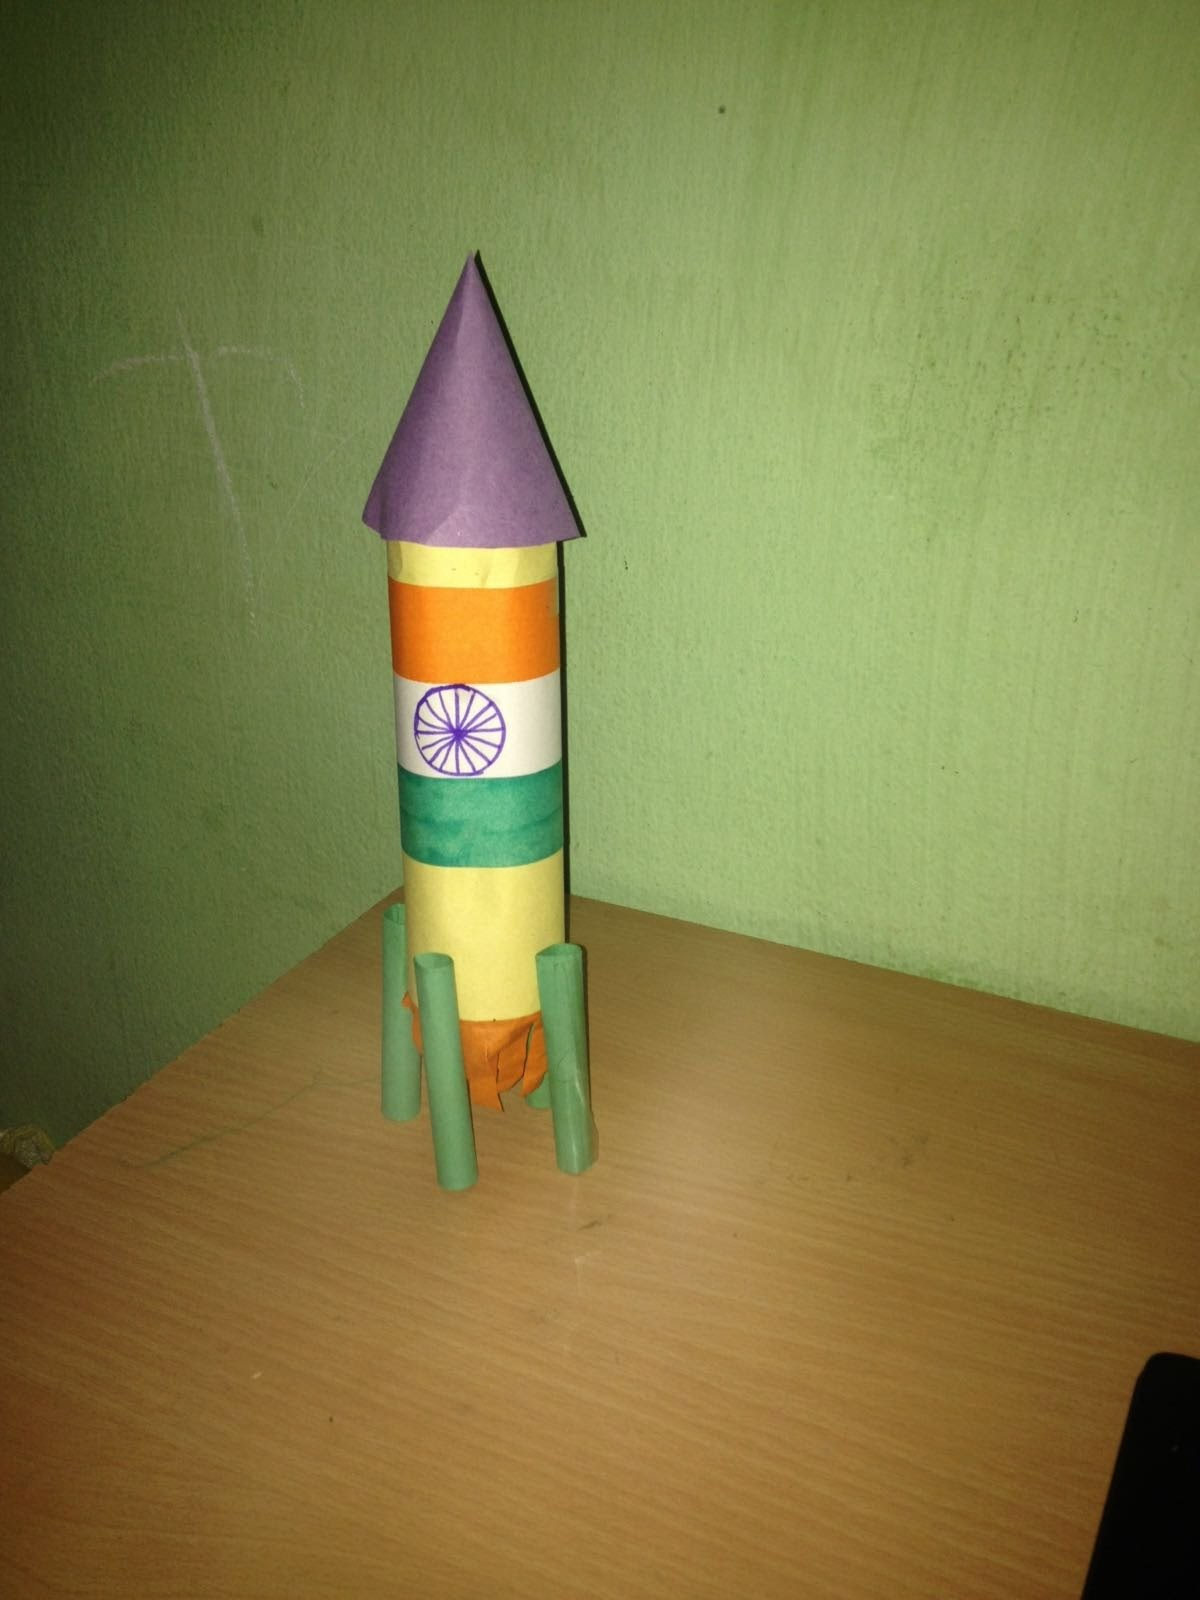 How to make paper Rocket for kids? Indian flag Craft